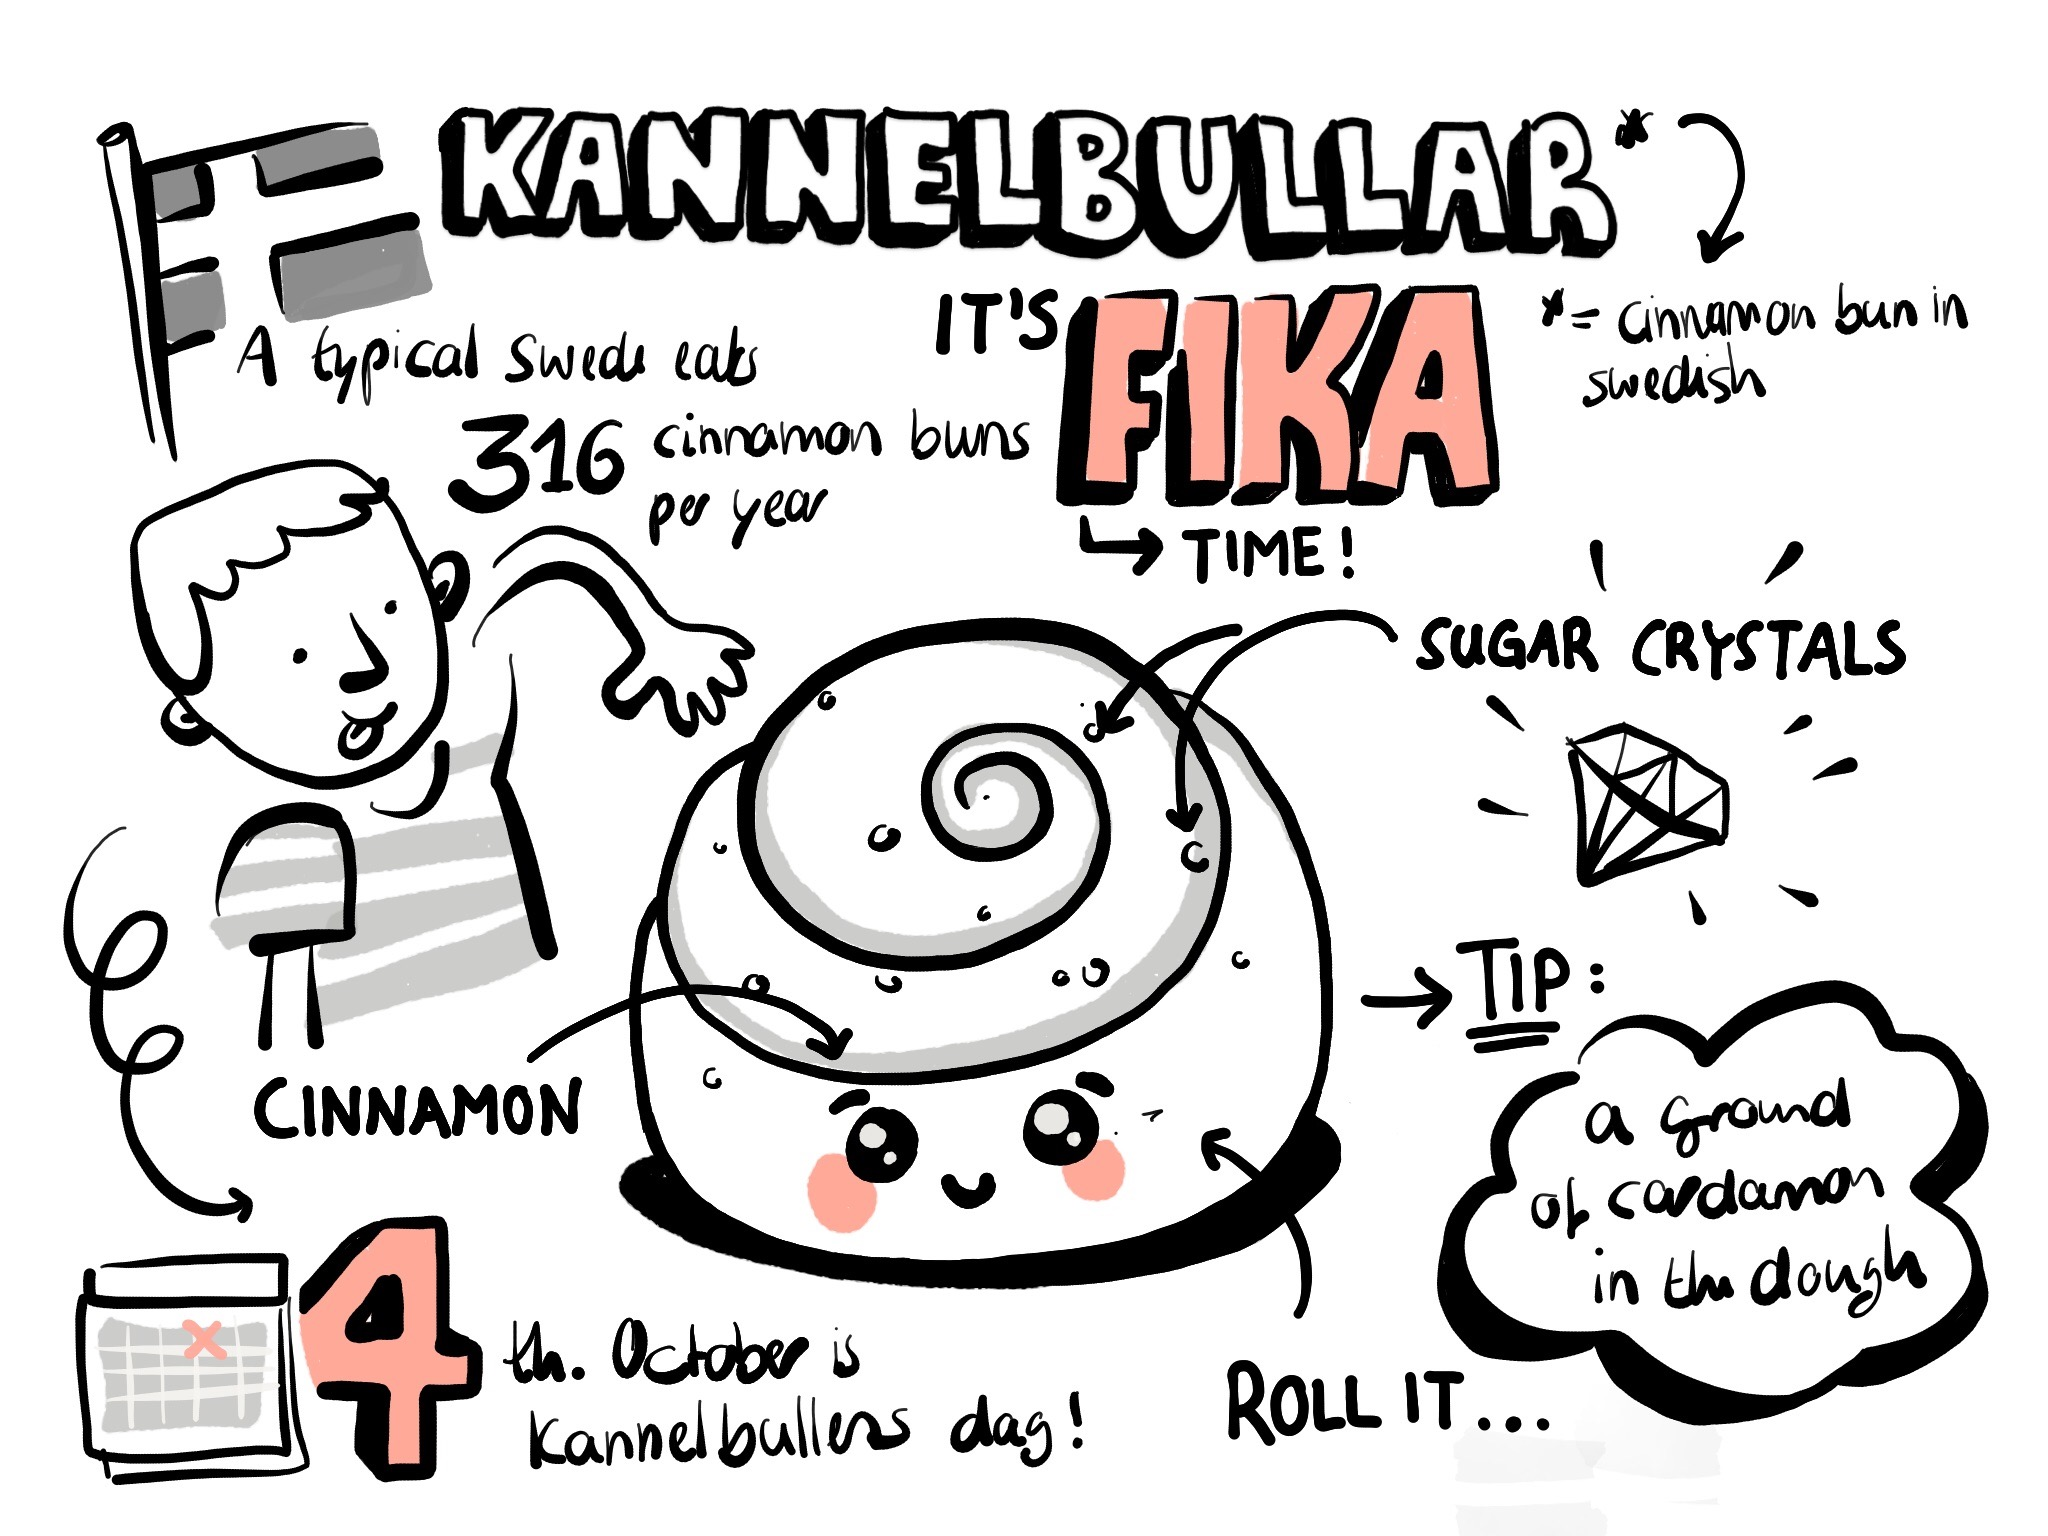 Travel sketchnote from Sweden